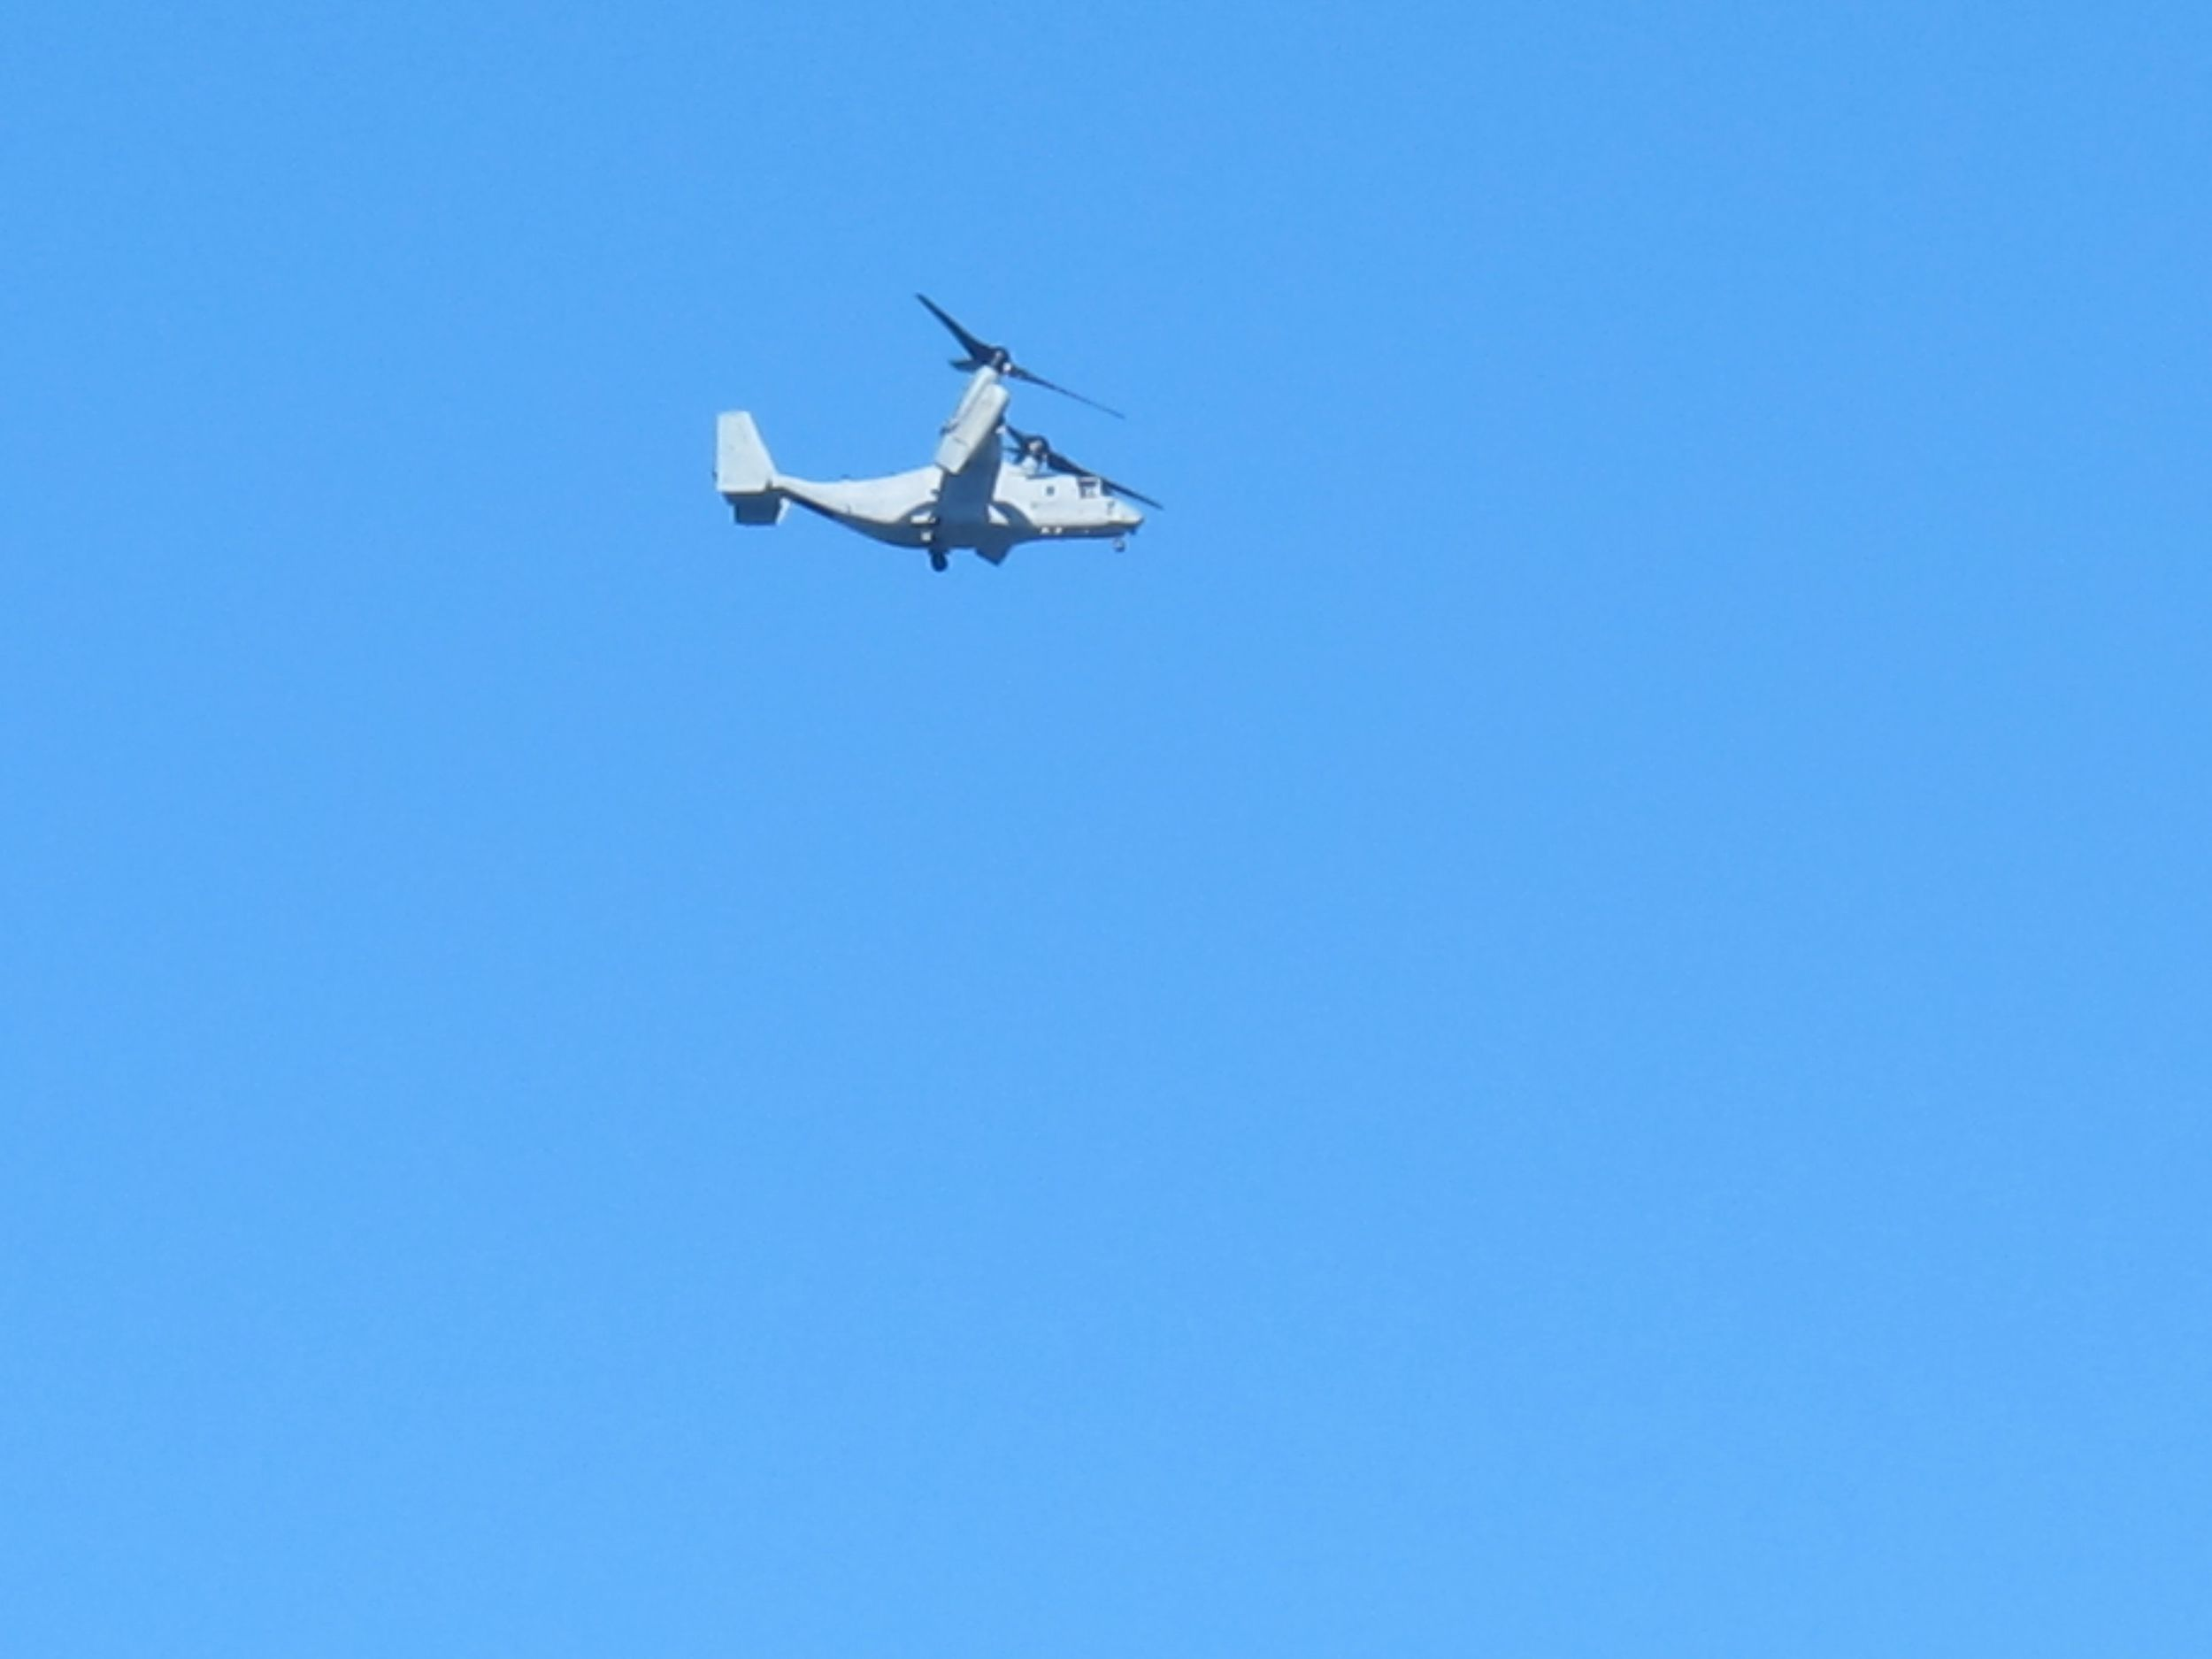 We also saw ospreys—that is, Osprey tiltorotor aircraft, which are a hybrid between a helicopter and an airplane and served as a reminder that San Diego is also one of the U.S.'s biggest Navy and Marine hubs.